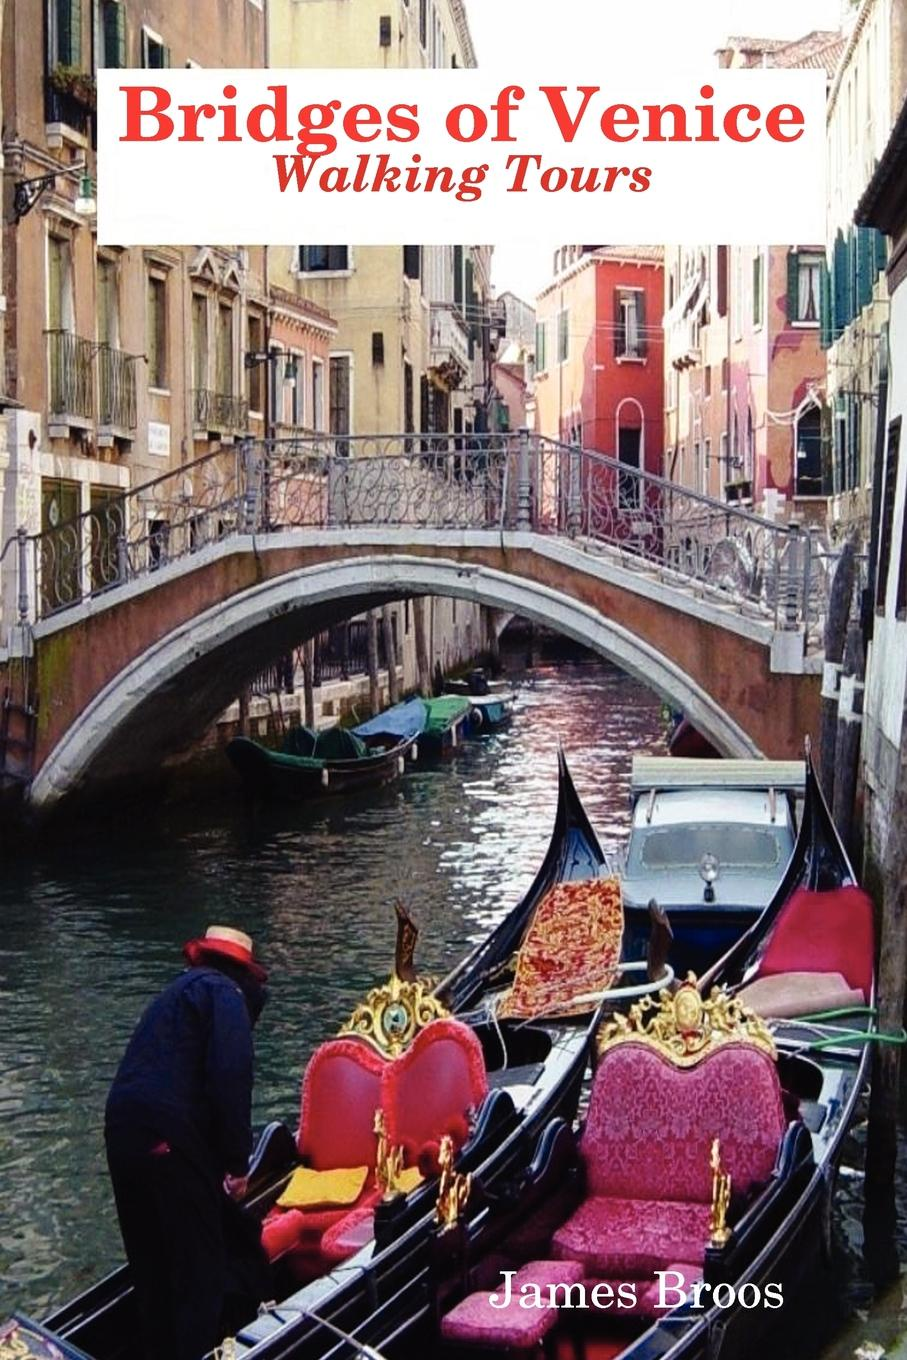 James Broos Bridges of Venice, Walking Tours a history of venice